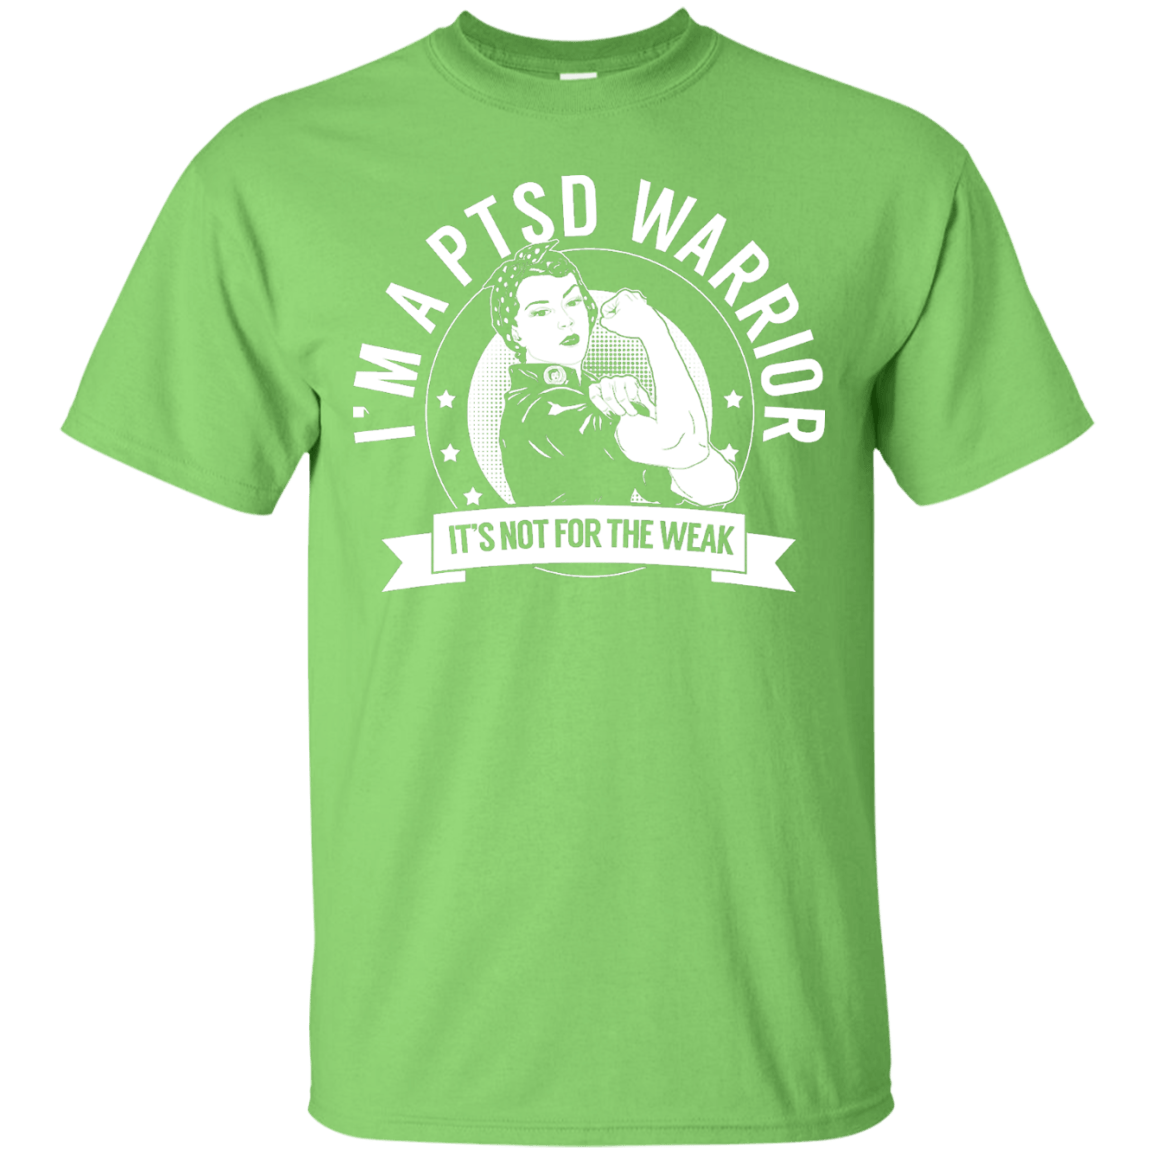 Short Sleeve - Post Traumatic Stress Disorder - PTSD Warrior Not For The Weak Unisex Shirt